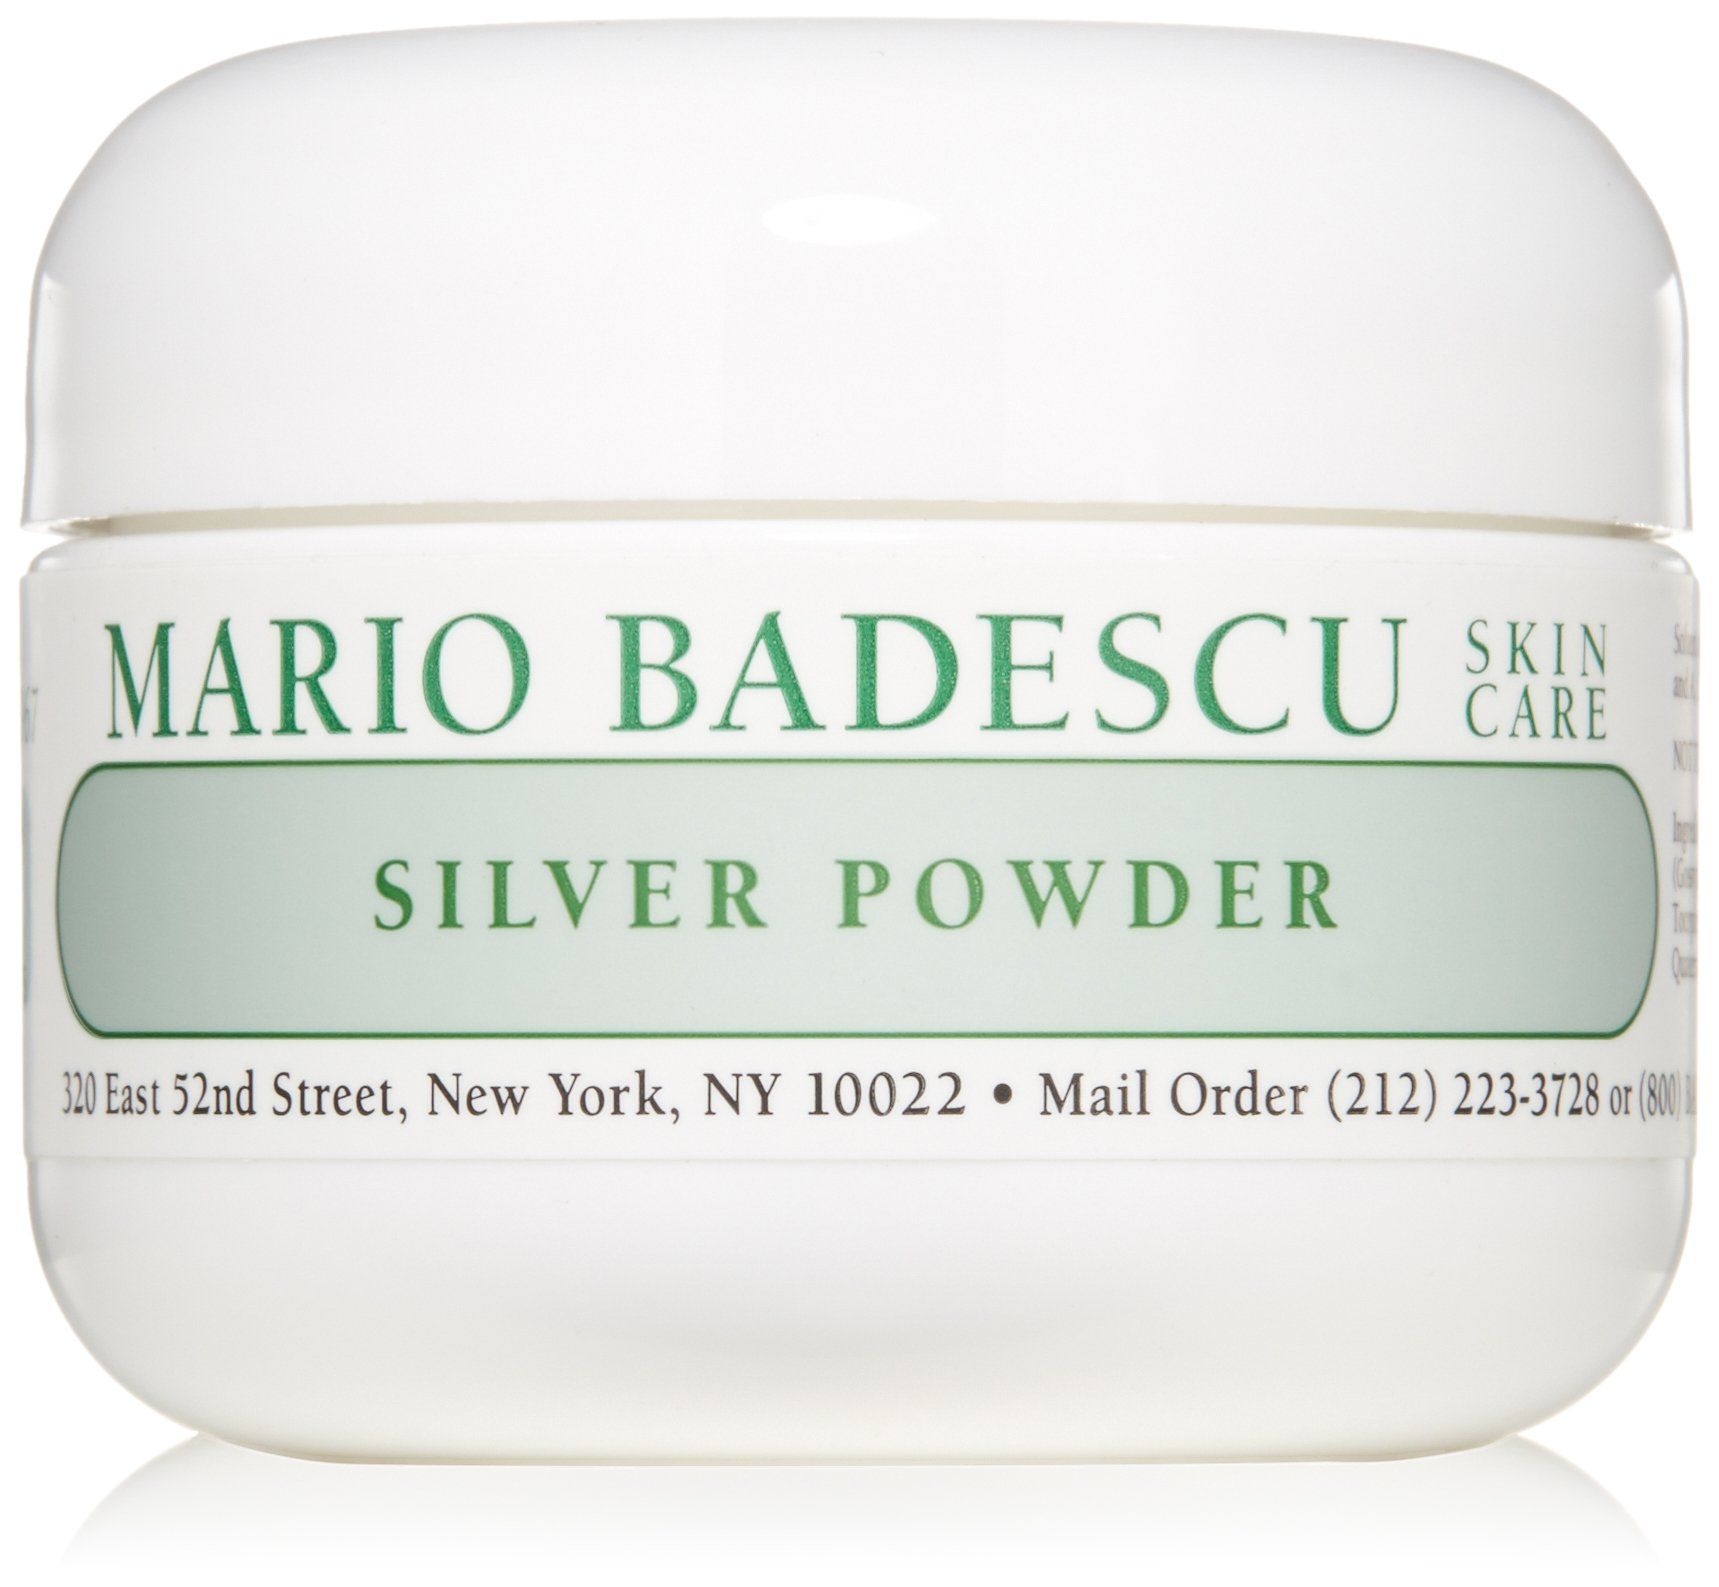 mario badescu anti acne serum how to use